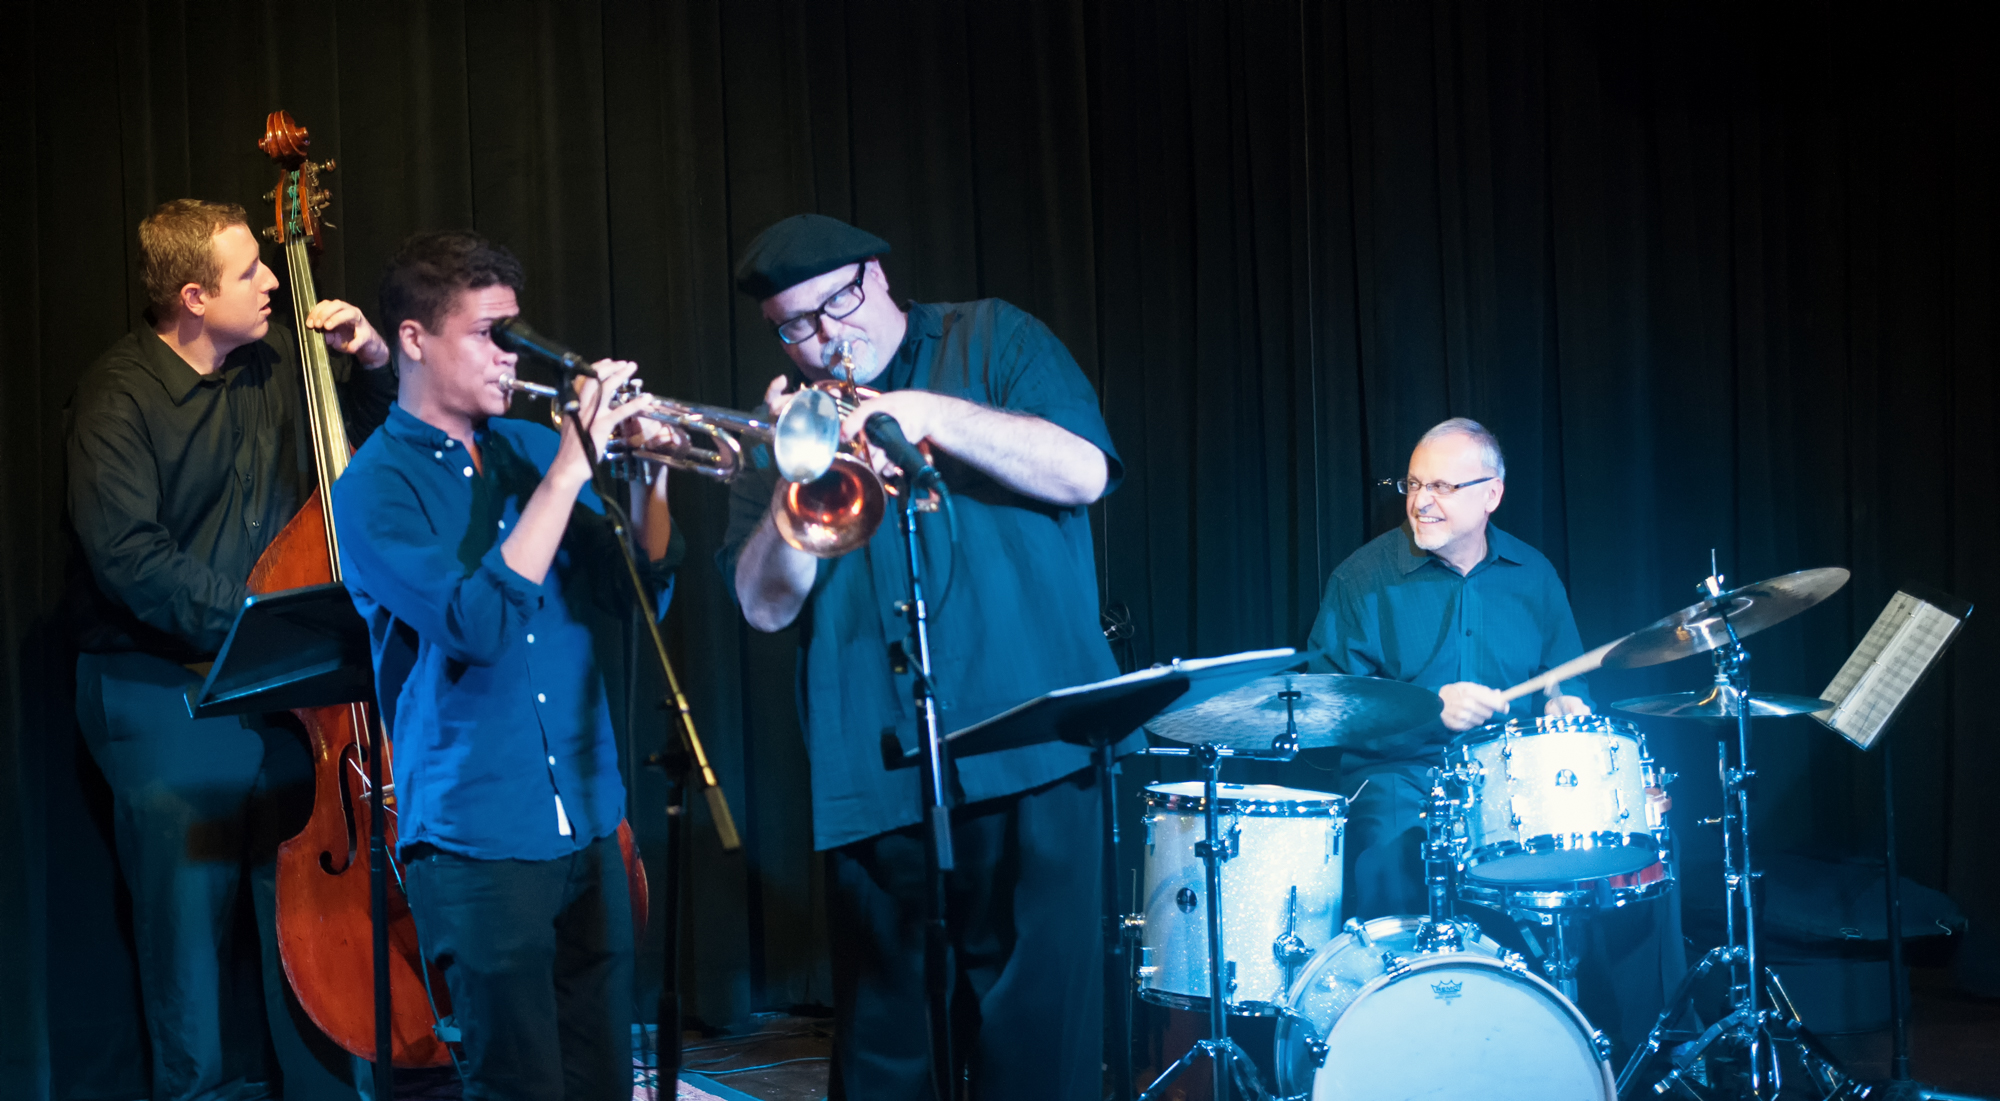 Chris Finet, Noah Simpson, Dmitri Matheny And Dom Moio With The Dmitri Matheny Quartet At The Nash